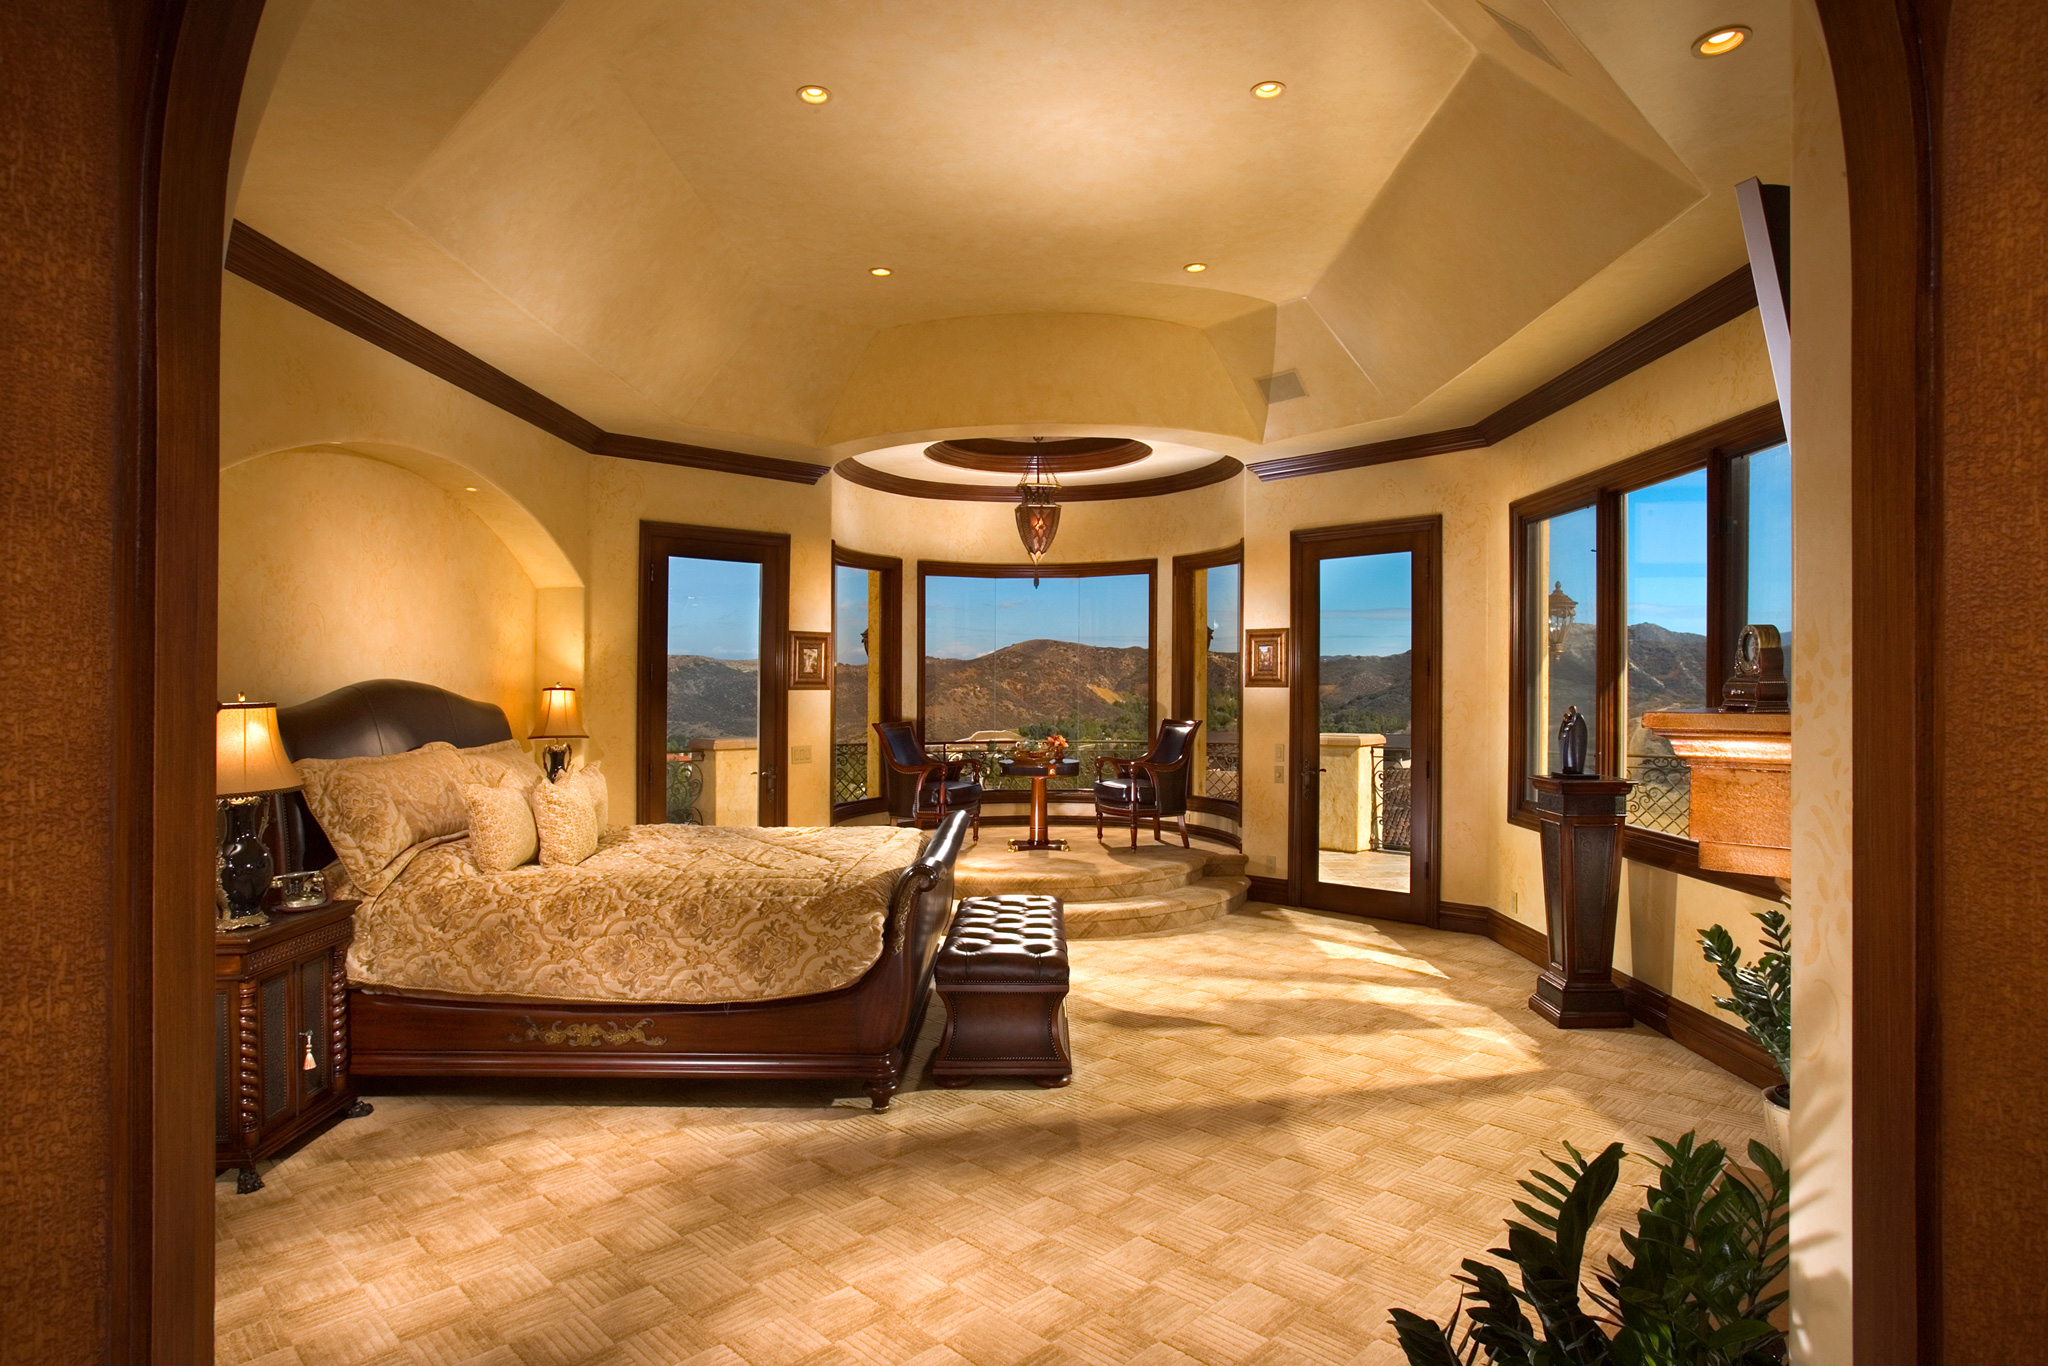 Master bedroom the interior designs for House bedroom ideas